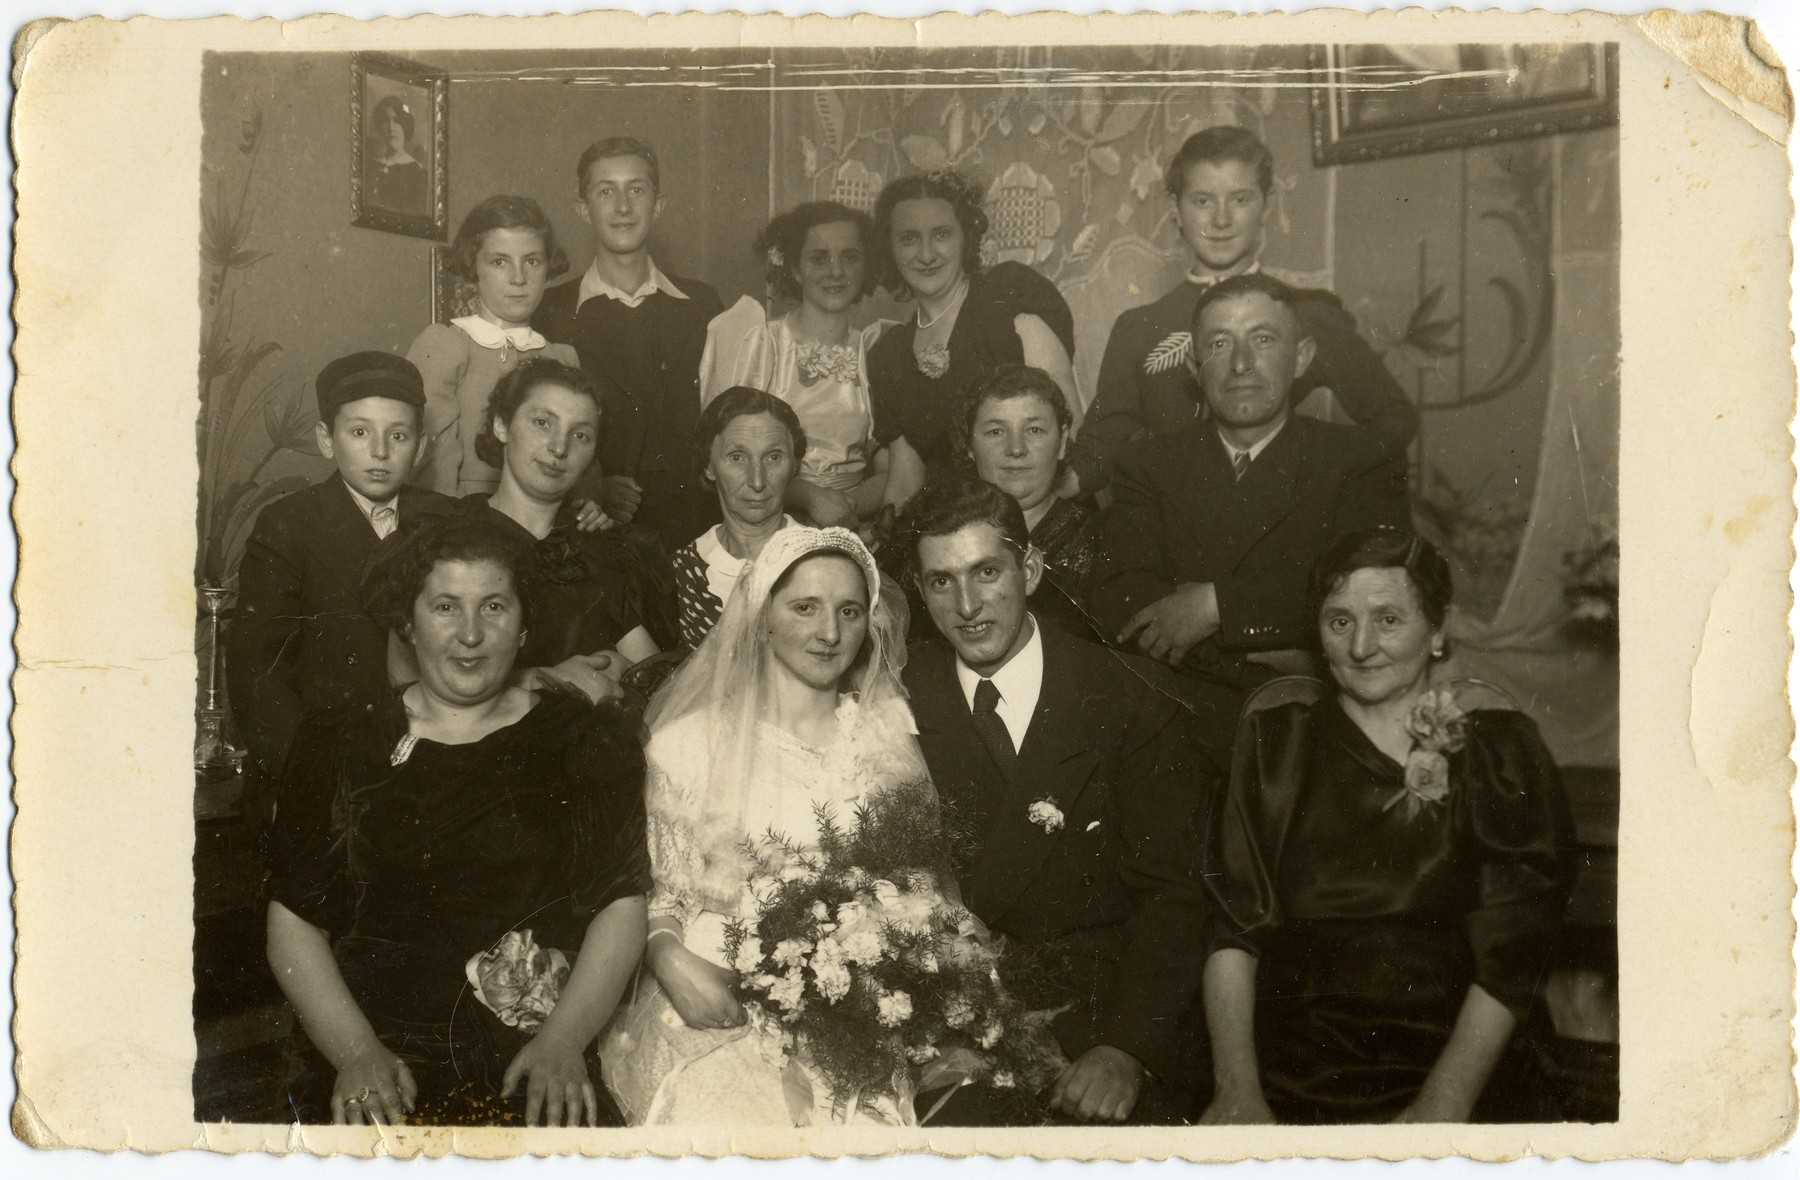 Wedding portrait of Pinkus Bergman and Rutka Most.   Pinkus Bergman, the donor's brother, was mobilized into the Polish army in September 1939 and did not return from the front.  Rutka died in the Lodz ghetto.   Pictured from left to right in the first row from the bottom are: Frymet Bergman, Rutka Most, Pinkus Bergman, and the mother of the bride.  In the second row, from left to right are: Abram Popinski, Frymet Szajnik (Bergfajnd), Estera Fraidel Szajnik, Chana Hinda Popinski, and Benjamin Bergman.  In the top row, from left to right, are: Toba Popinski (now Katzenstein), Henryk Bergman, the donor, the bride's sisters and Rywka Popinski.